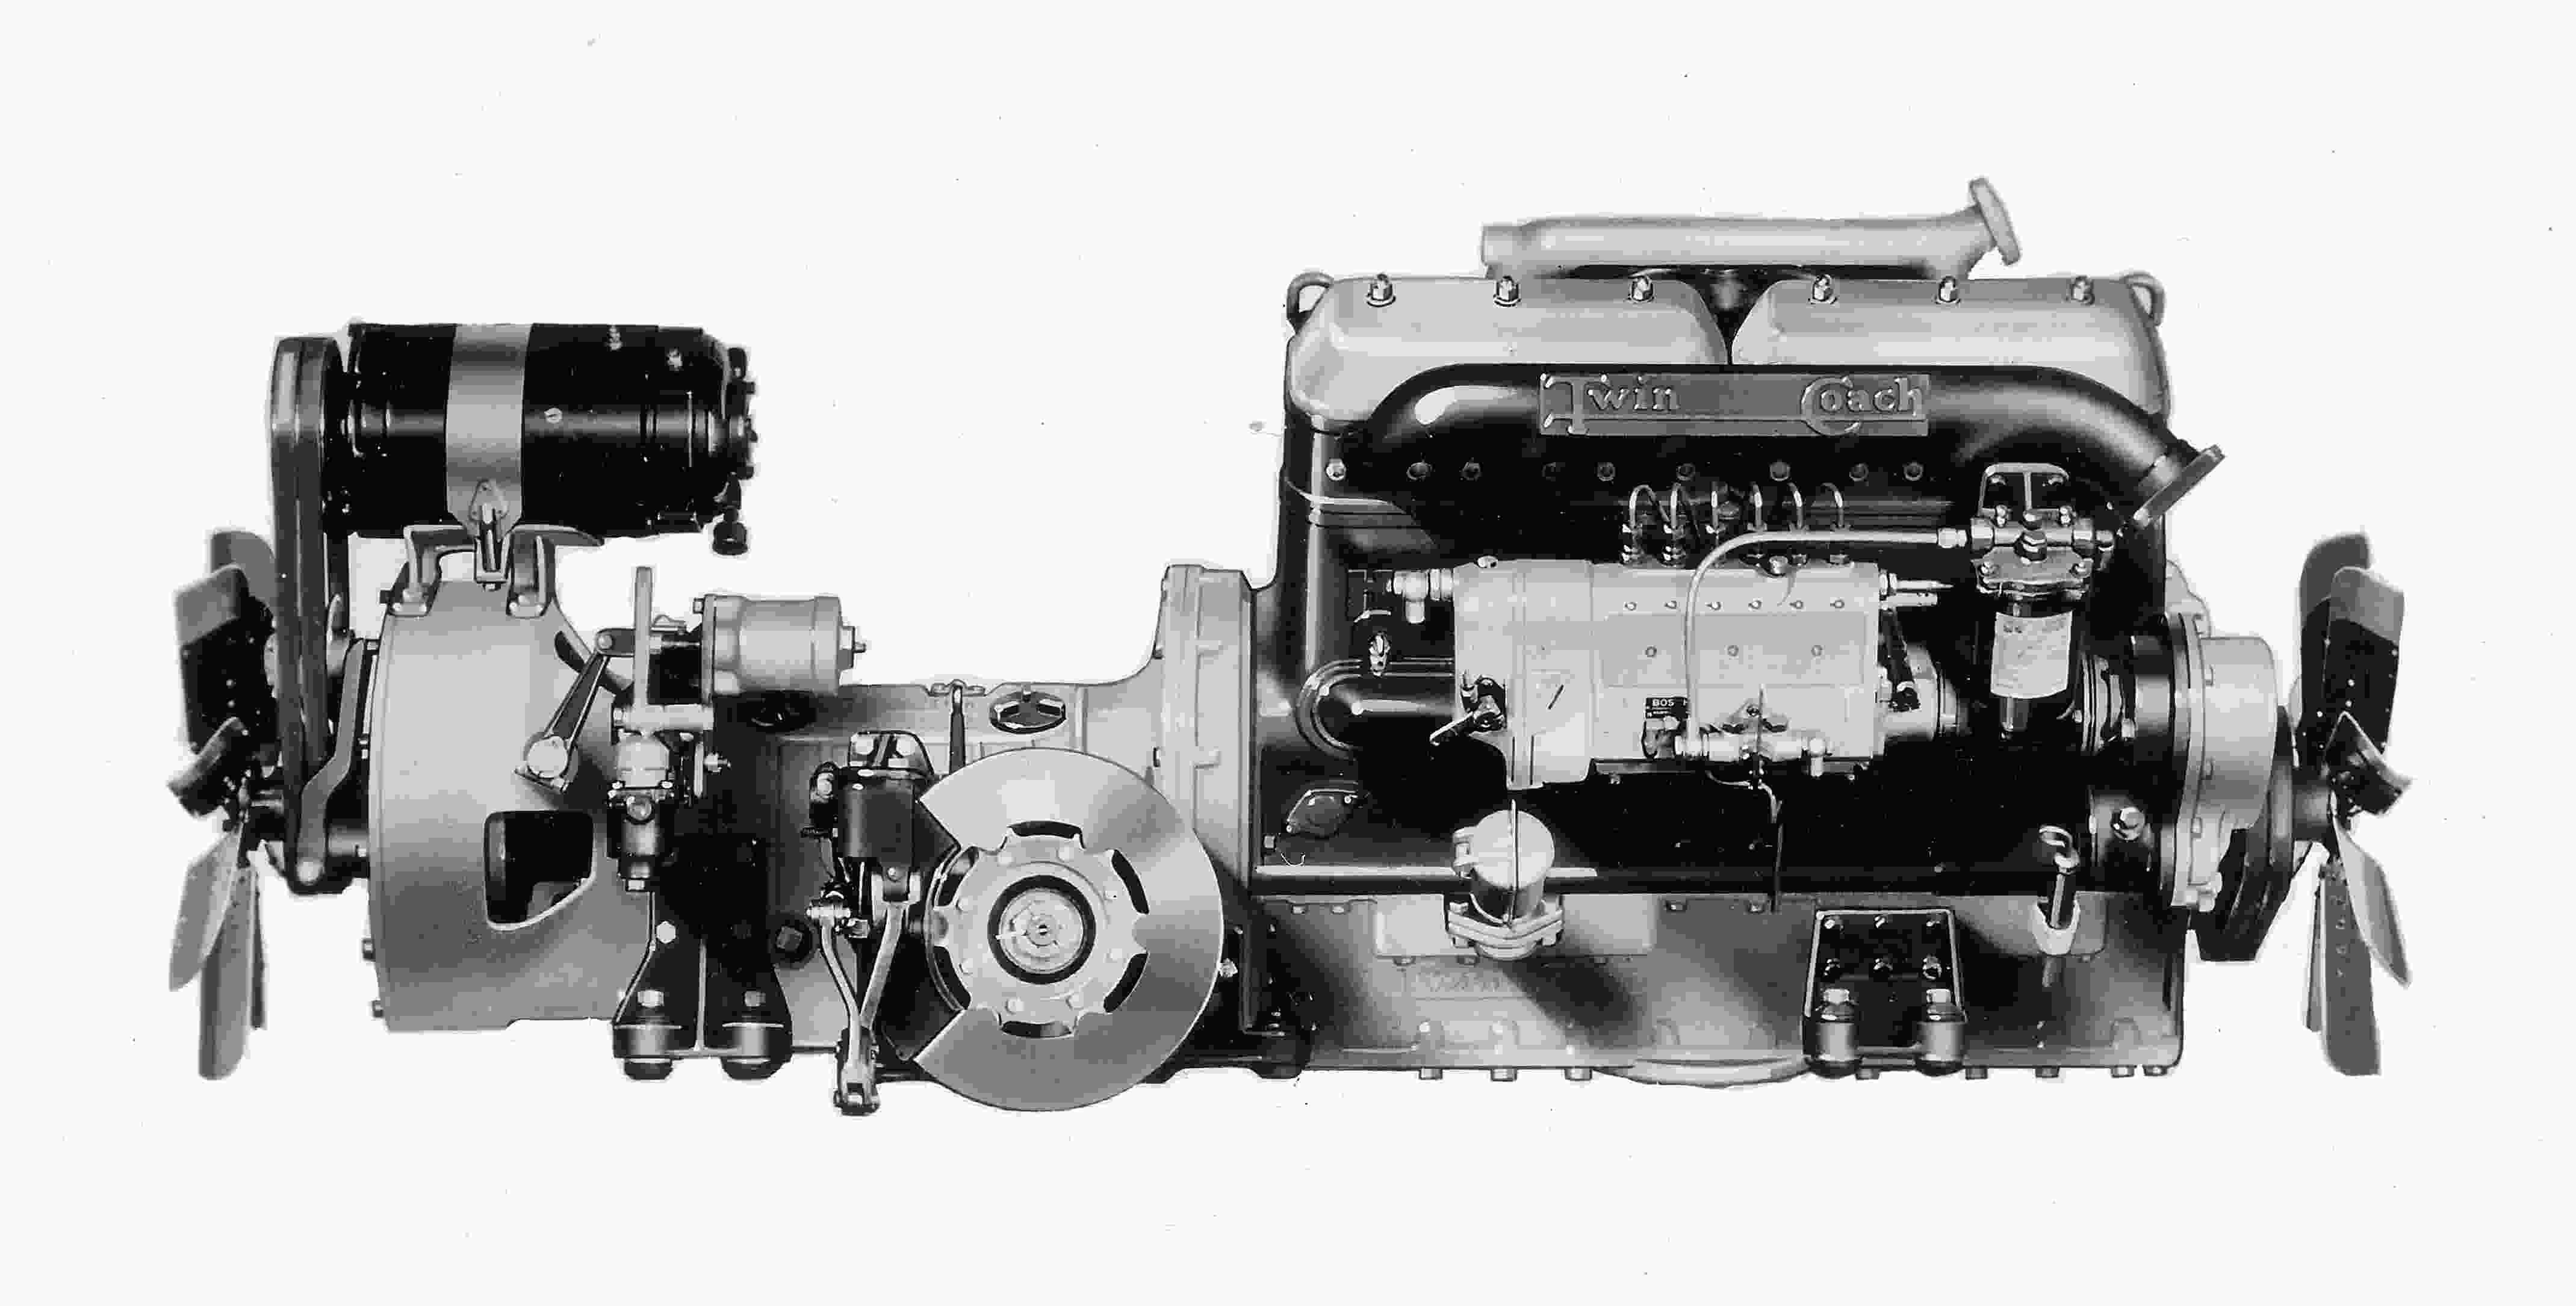 Buses Charging Circuit Diagram For The 1947 Studebaker All Models 1935 Twin Coach Diesel Engine By Hercules